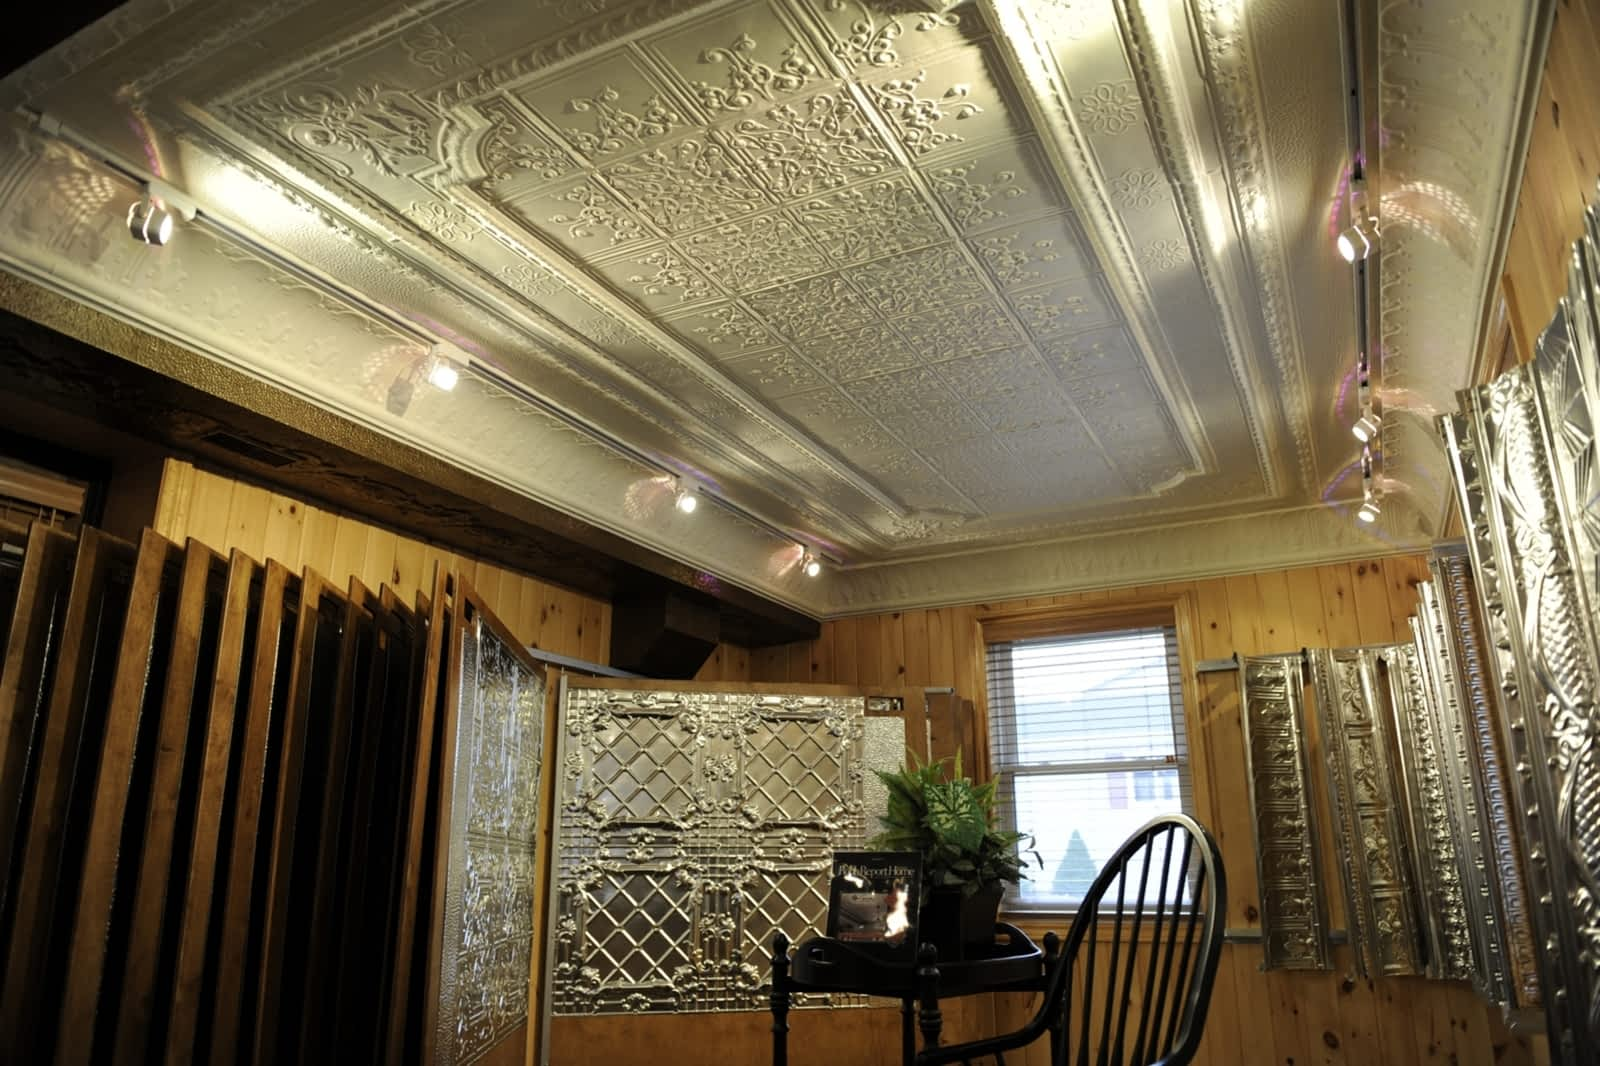 decorative ceilings boatylicious tin in home history depot tiles canada org ceiling kitchens